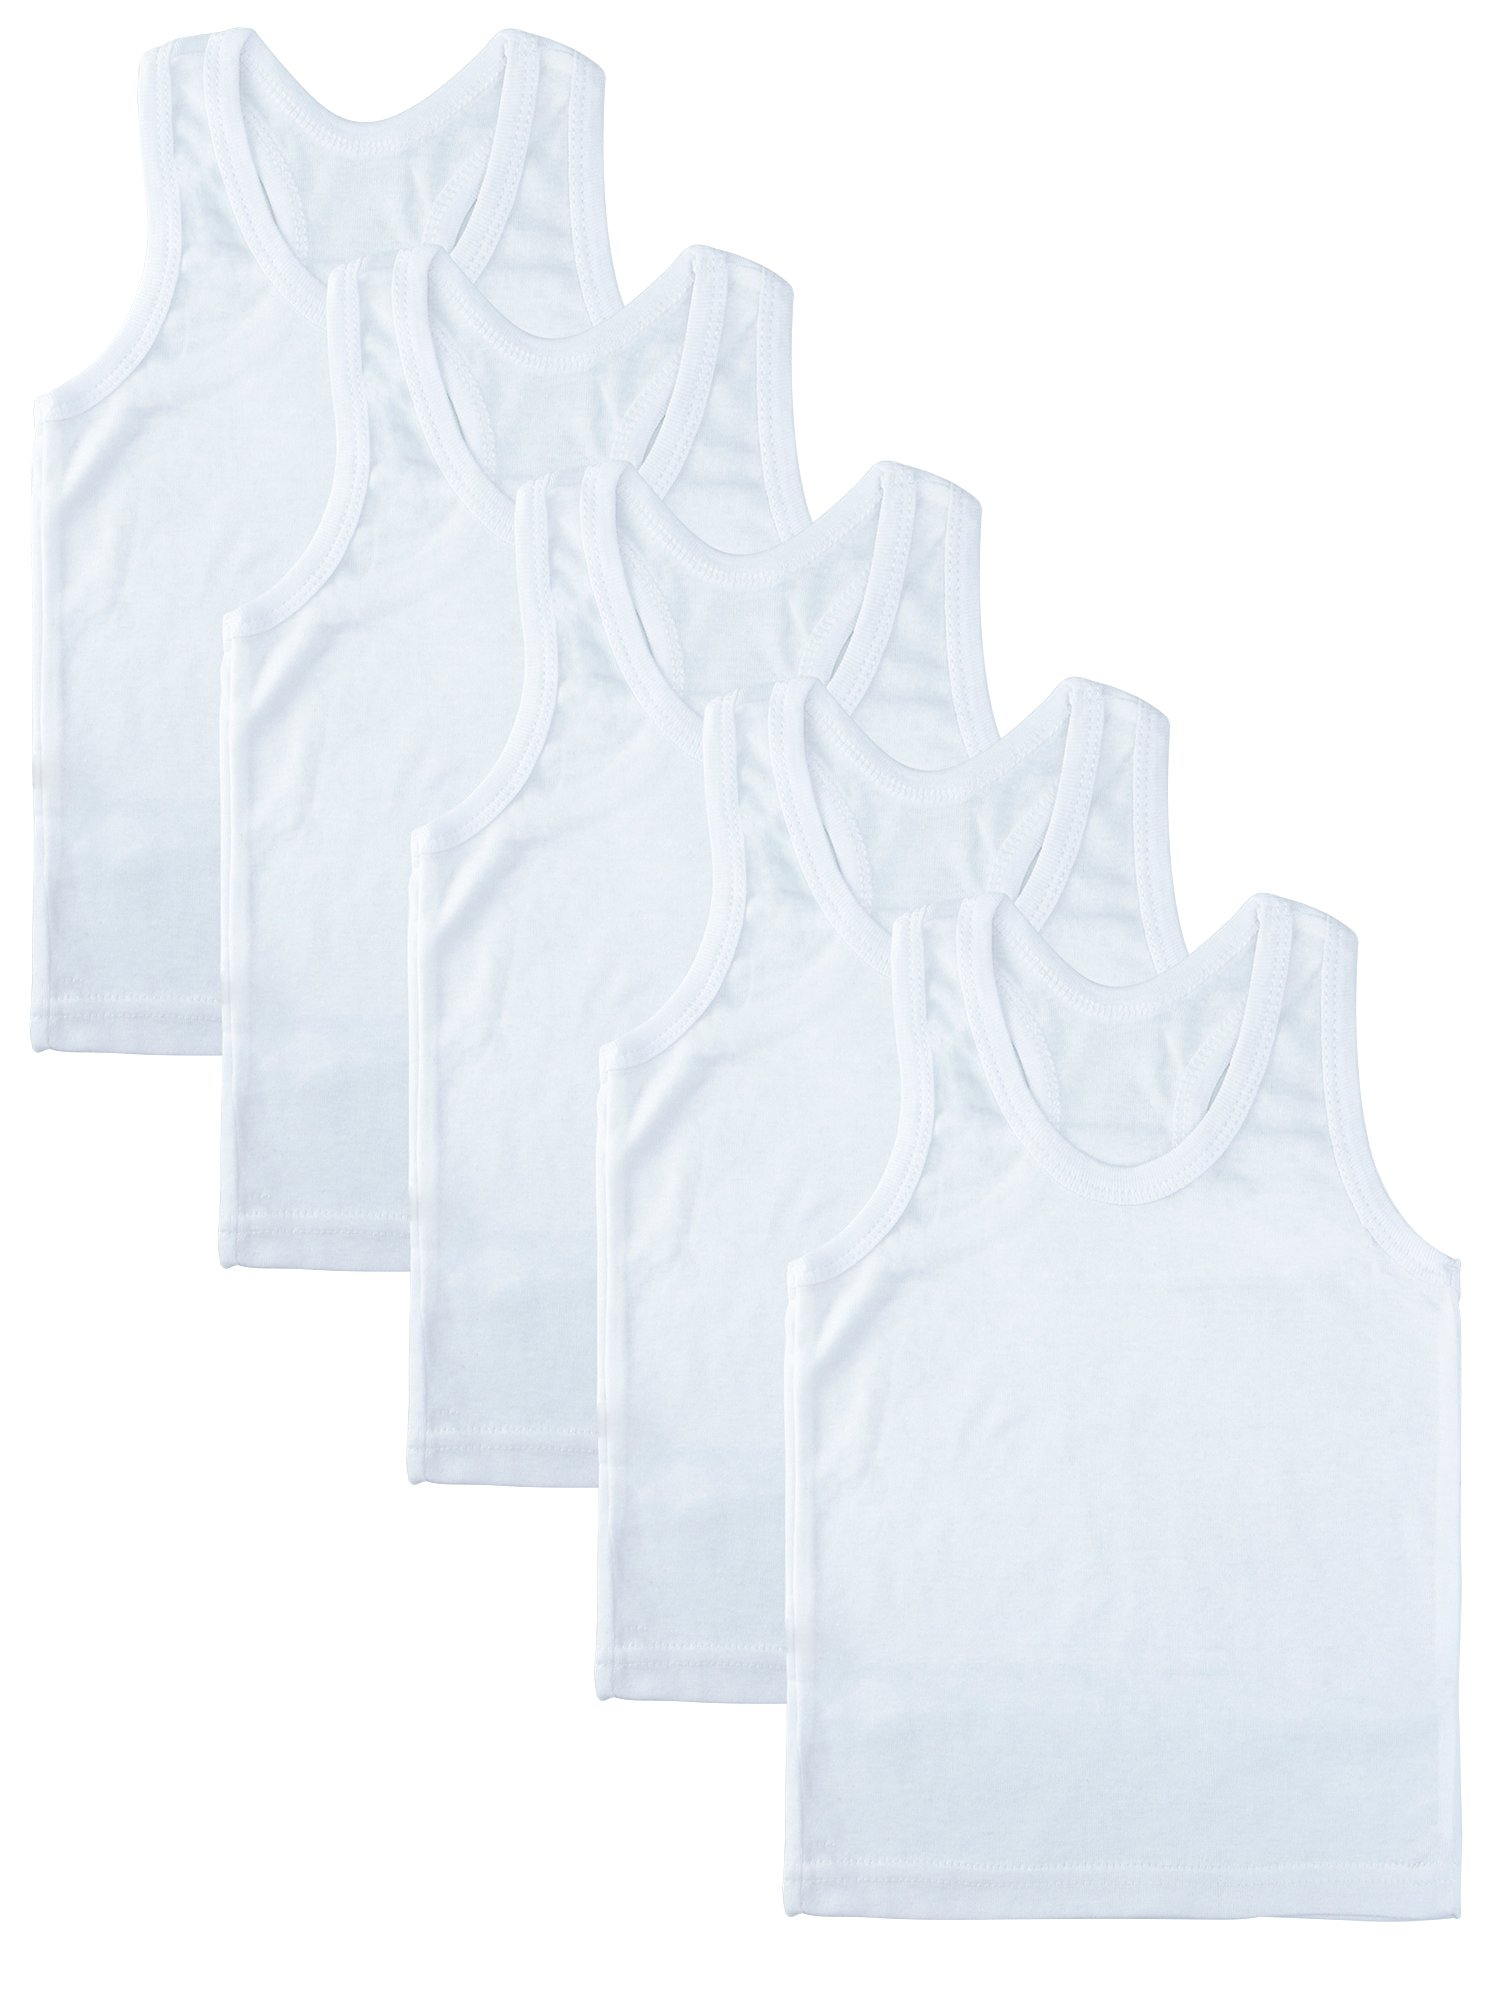 Coobey 5 Pack Toddler Kids Cotton Tank Top Undershirts Boys Or Girls Soft Undershirt Tees (2T/3T, White)